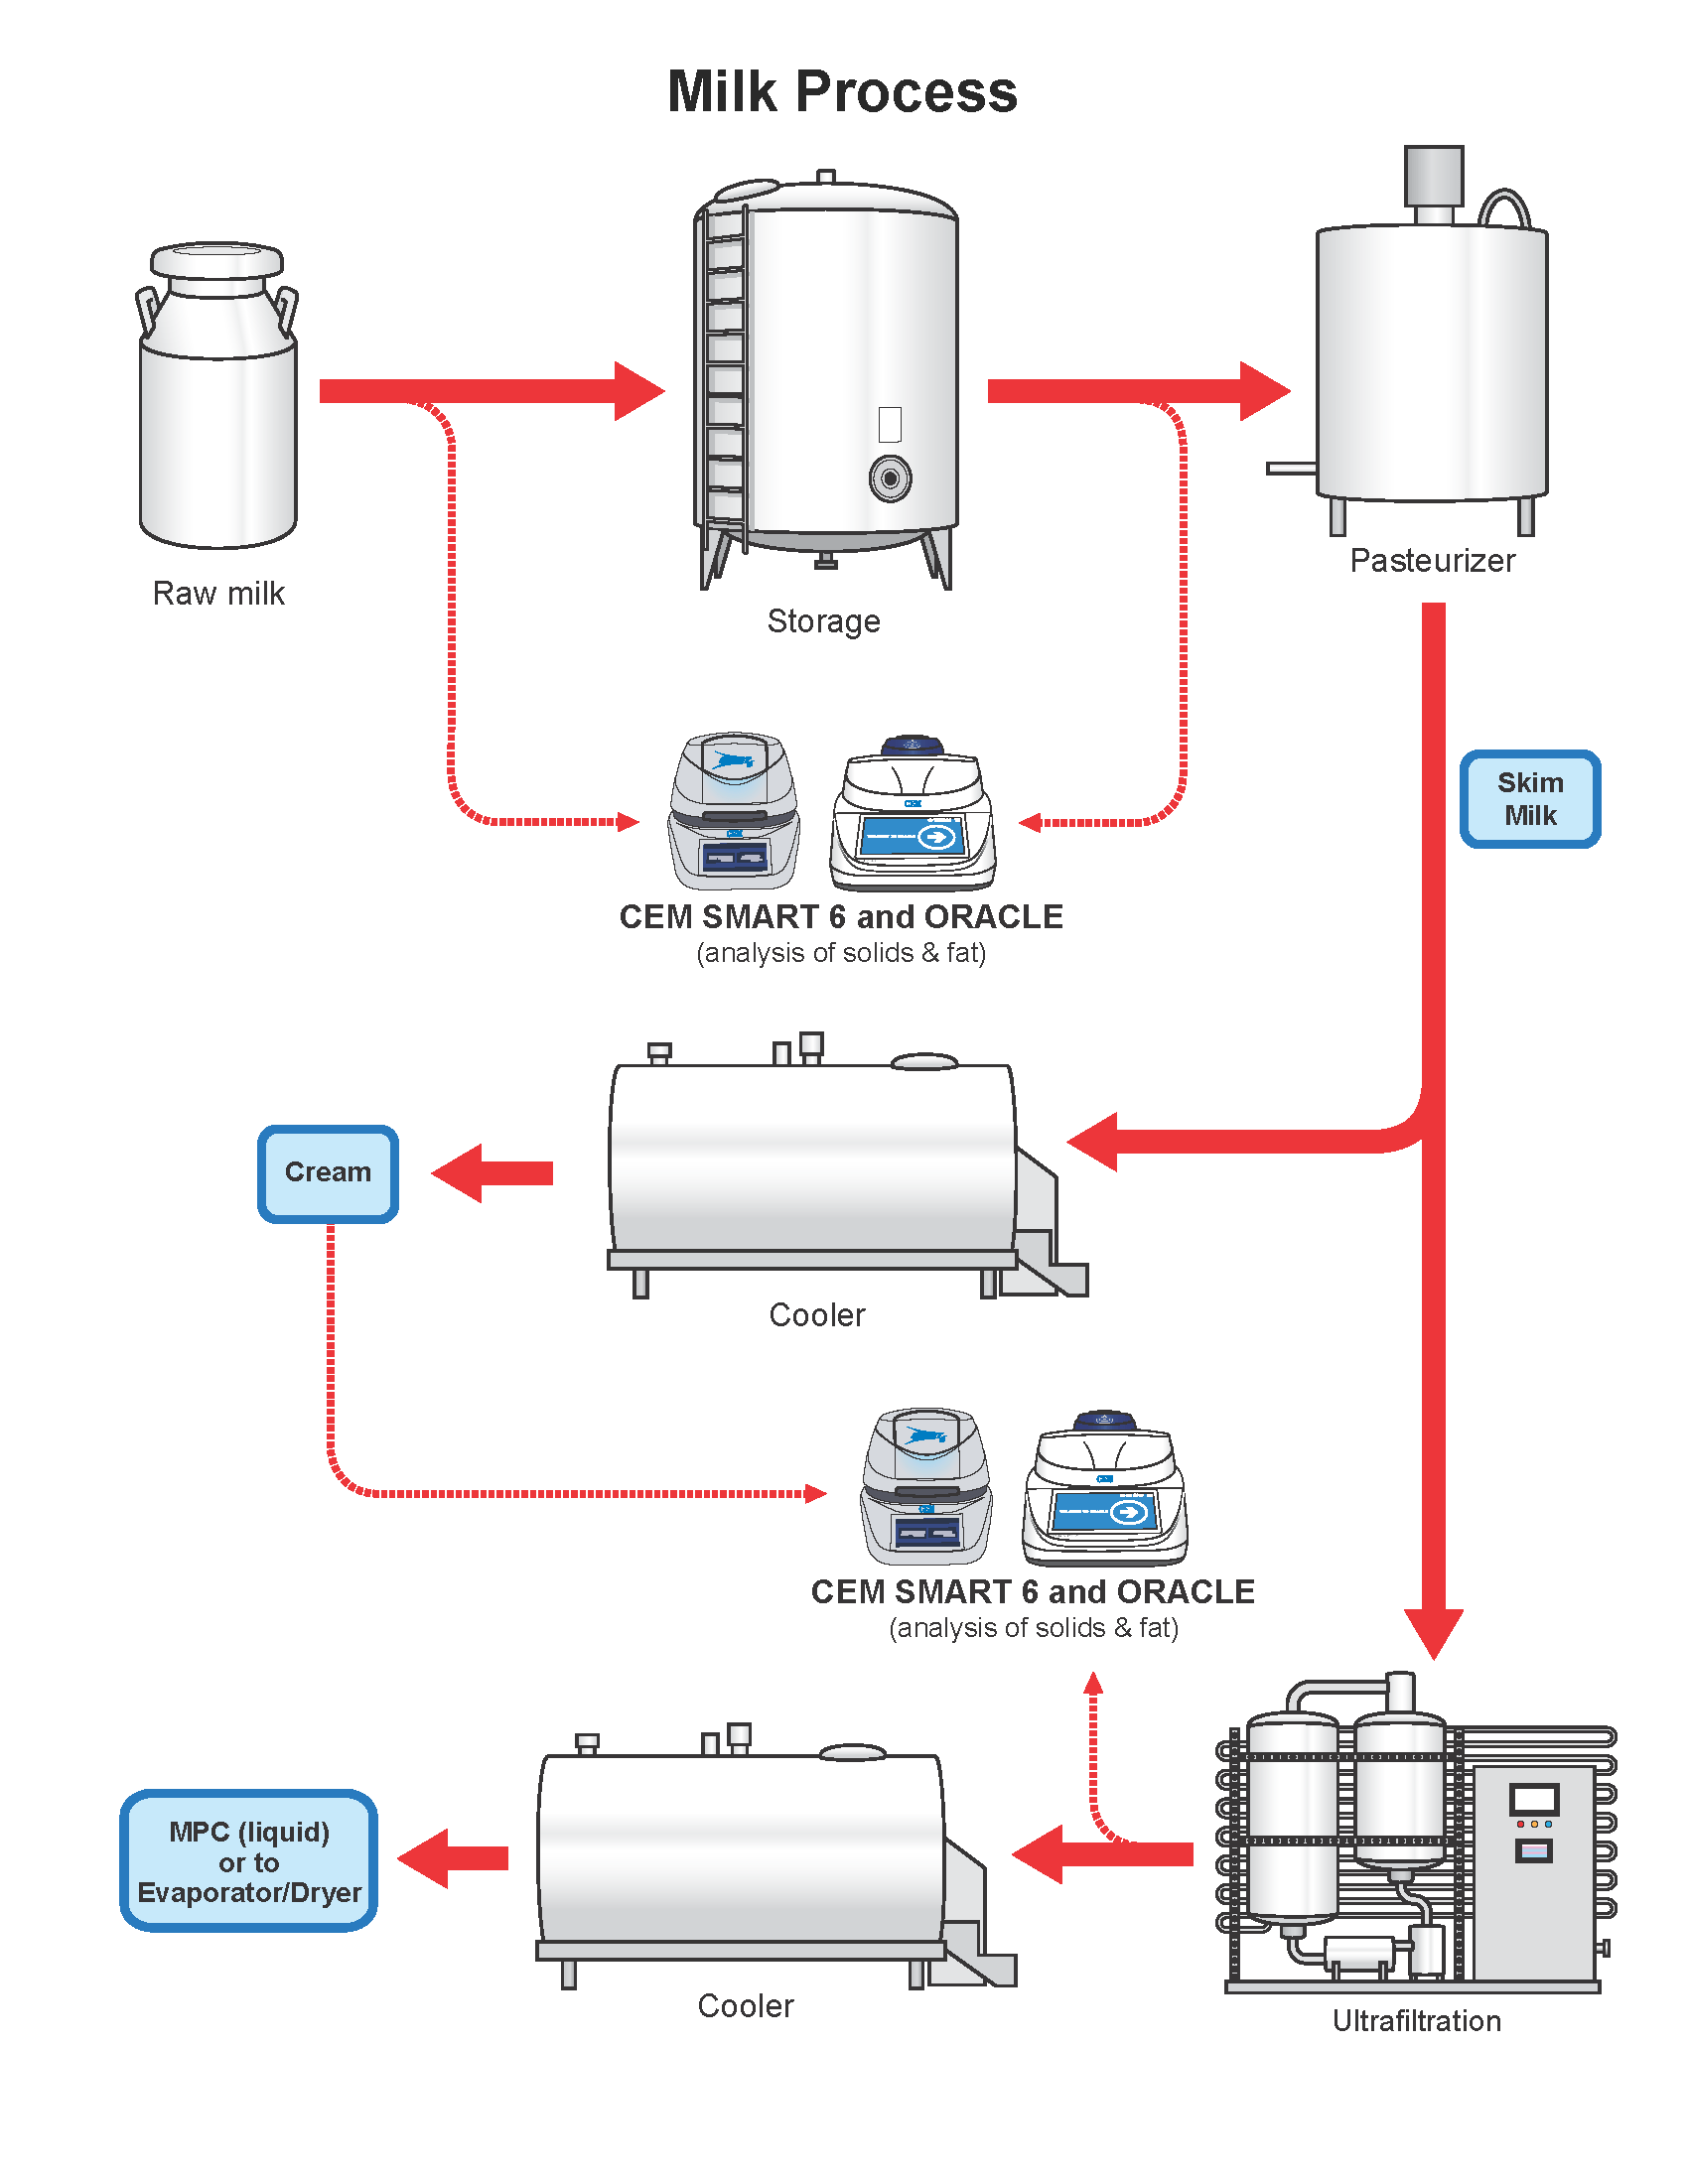 hight resolution of the milk flow chart gives precise details on the production process of milk as well as an explanation of where cem process products can be implemented to